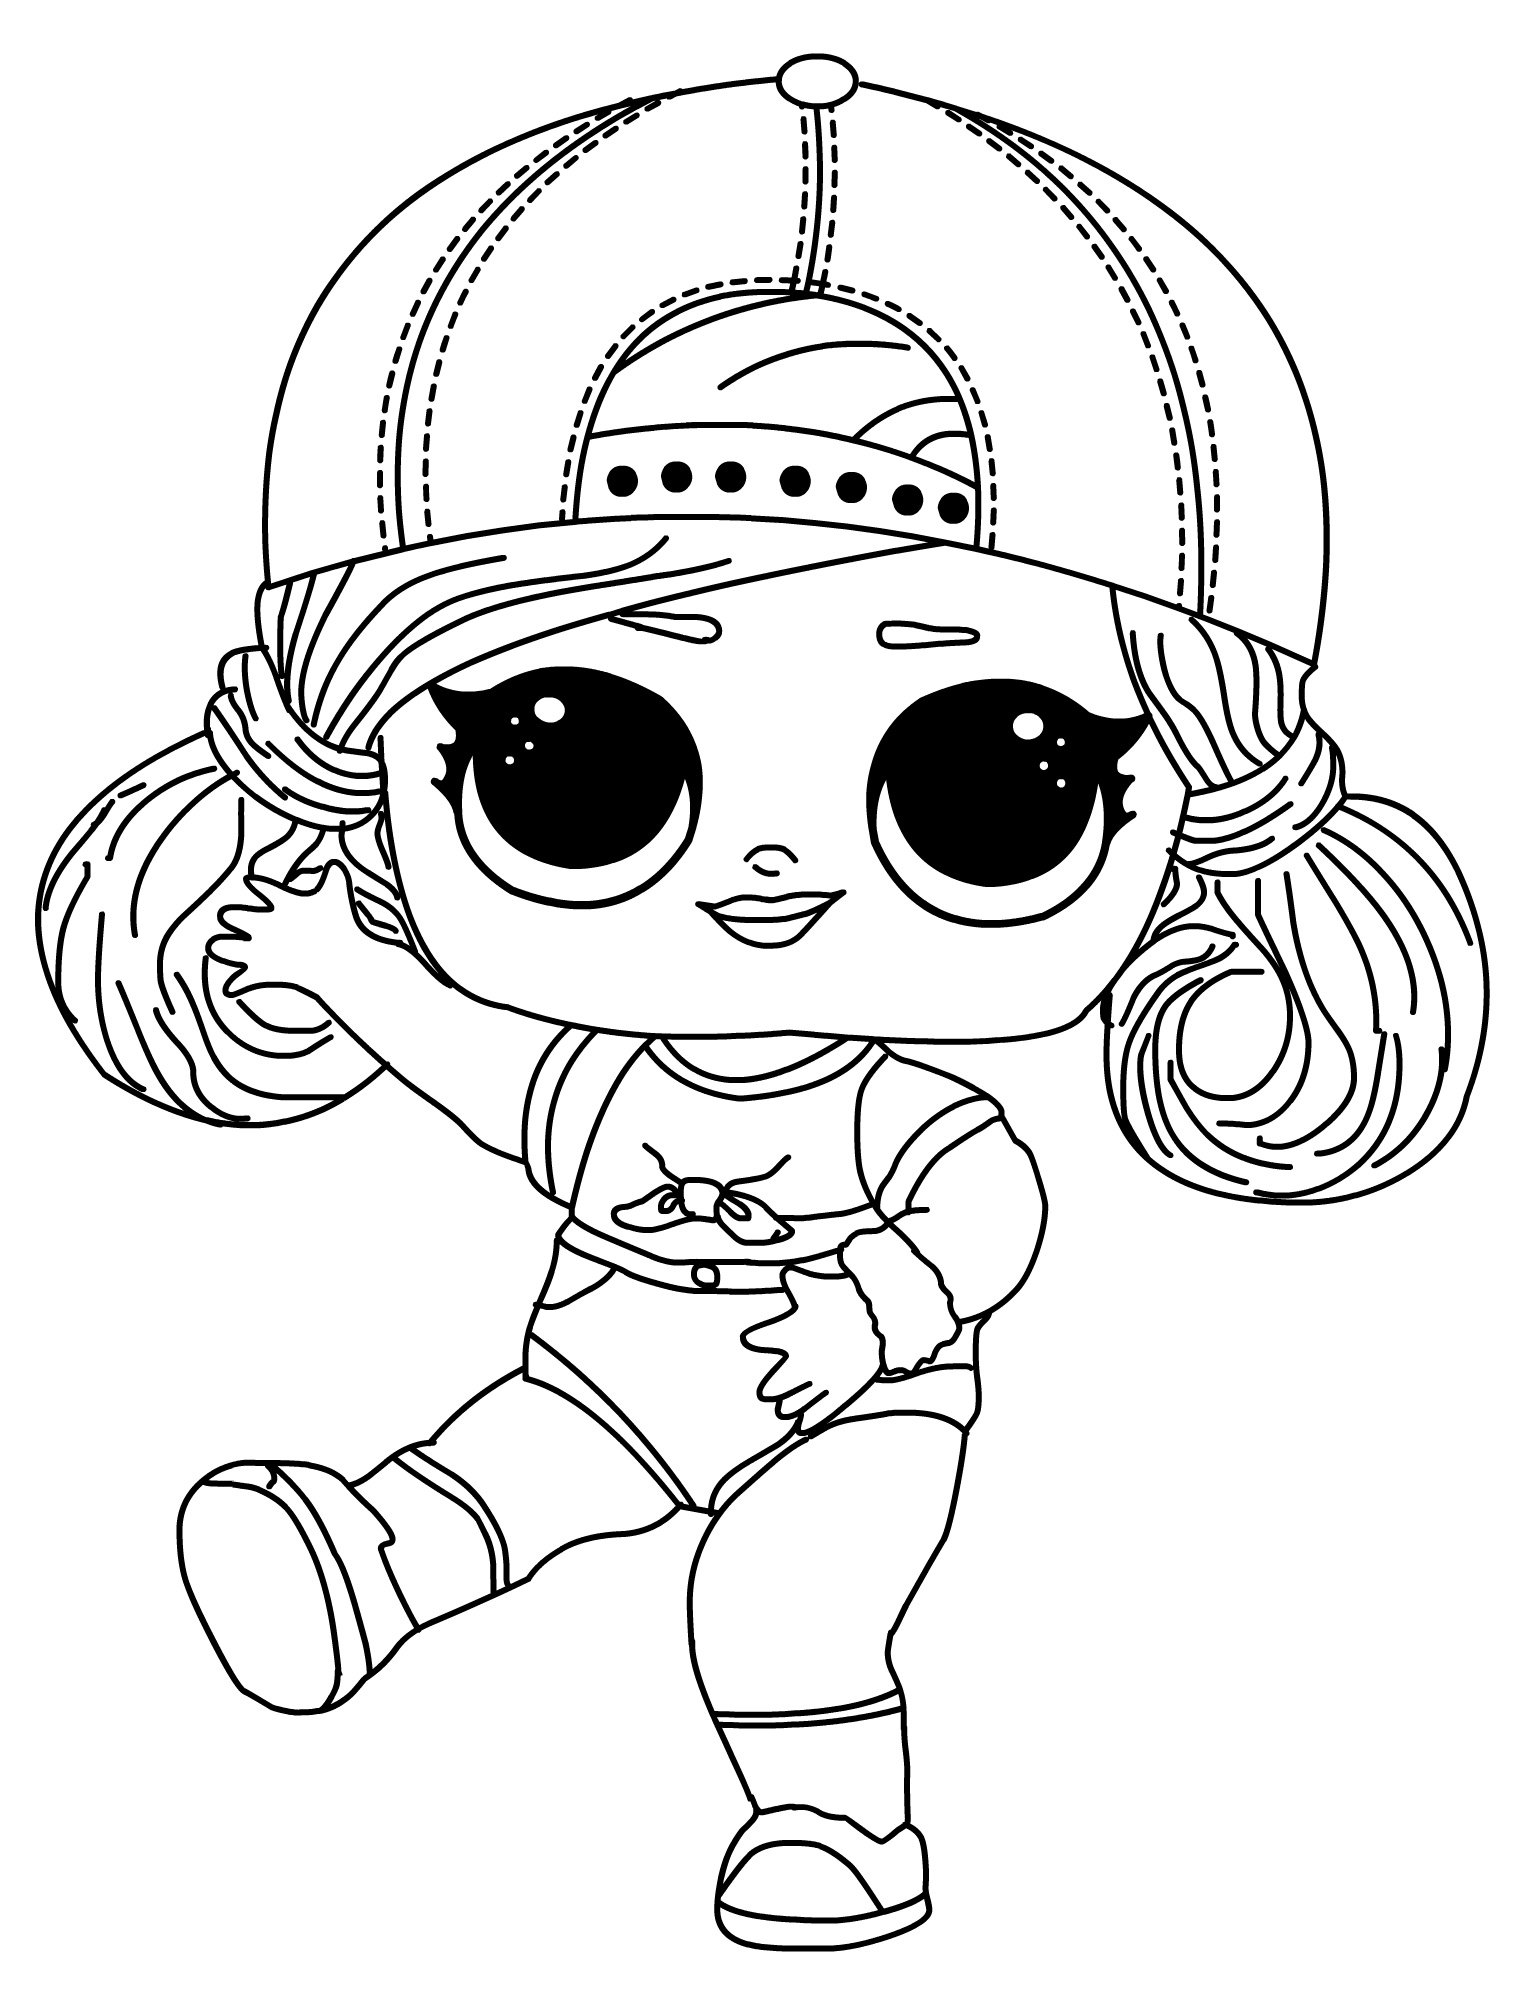 lol toy coloring pages free printable lol surprise dolls coloring pages coloring toy lol pages